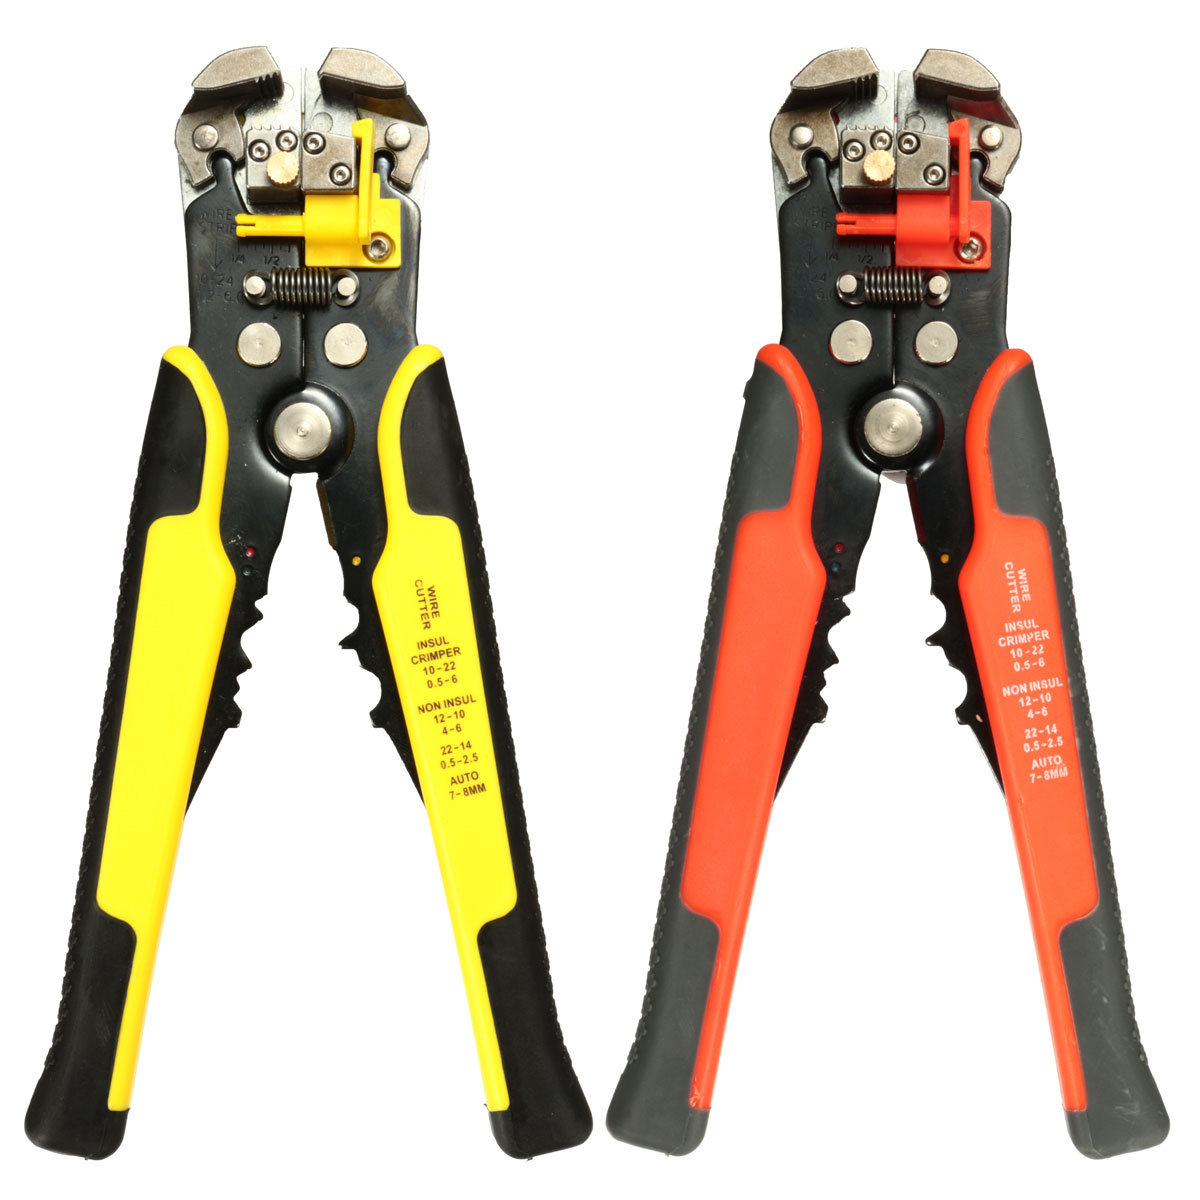 electricians wire cutter stripper